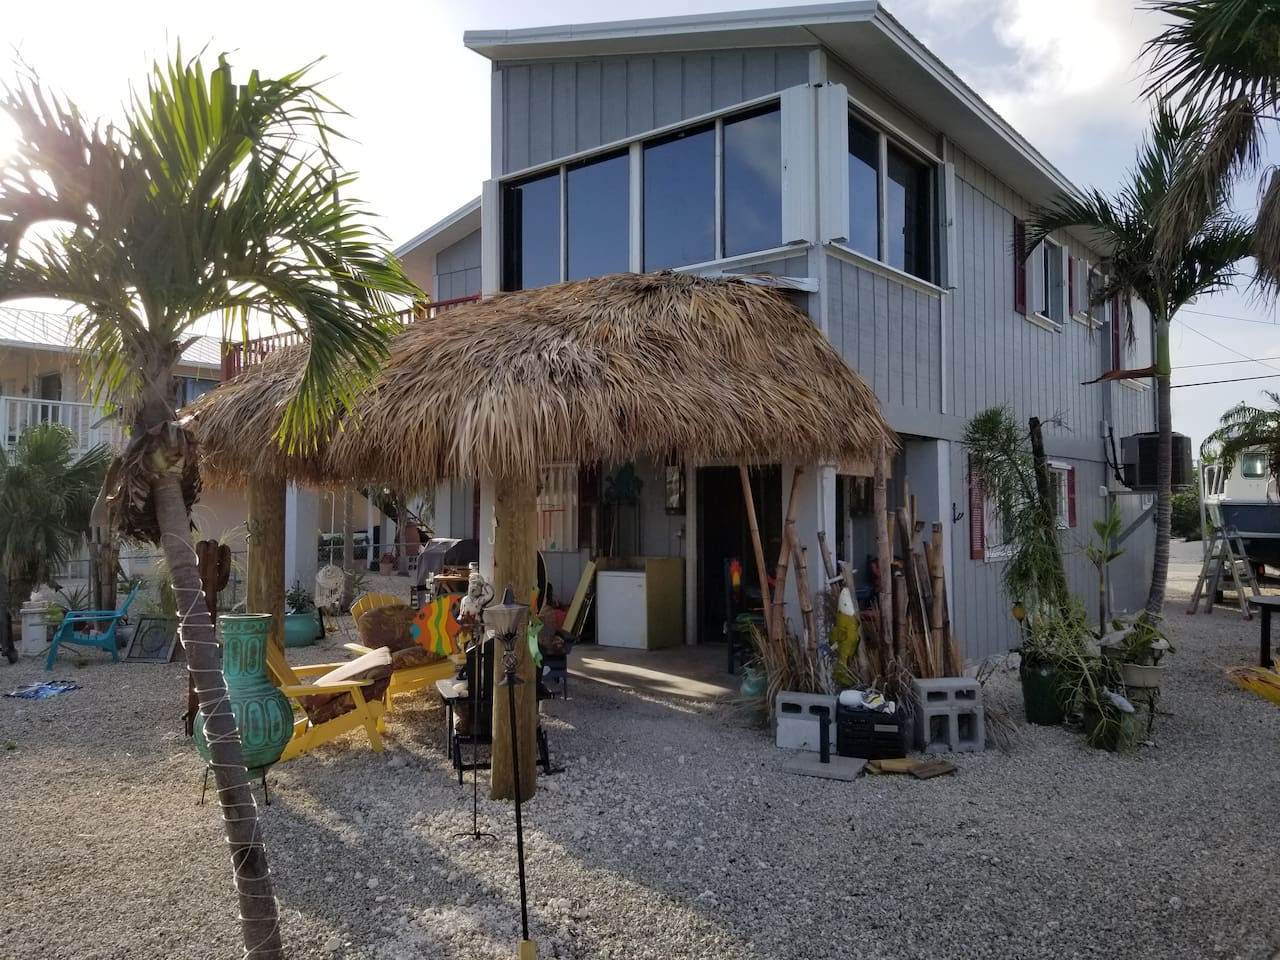 Enjoy Shade of the Tiki Hut or lay on in the Sun in the back yard